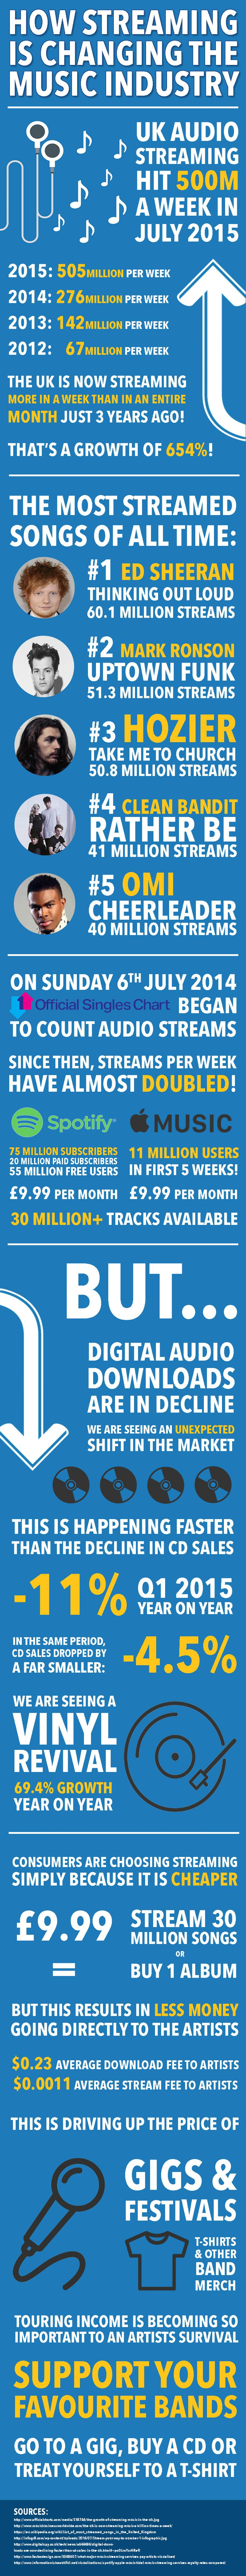 How Streaming Is Changing The Music Industry #infographic #Music #Entertainment